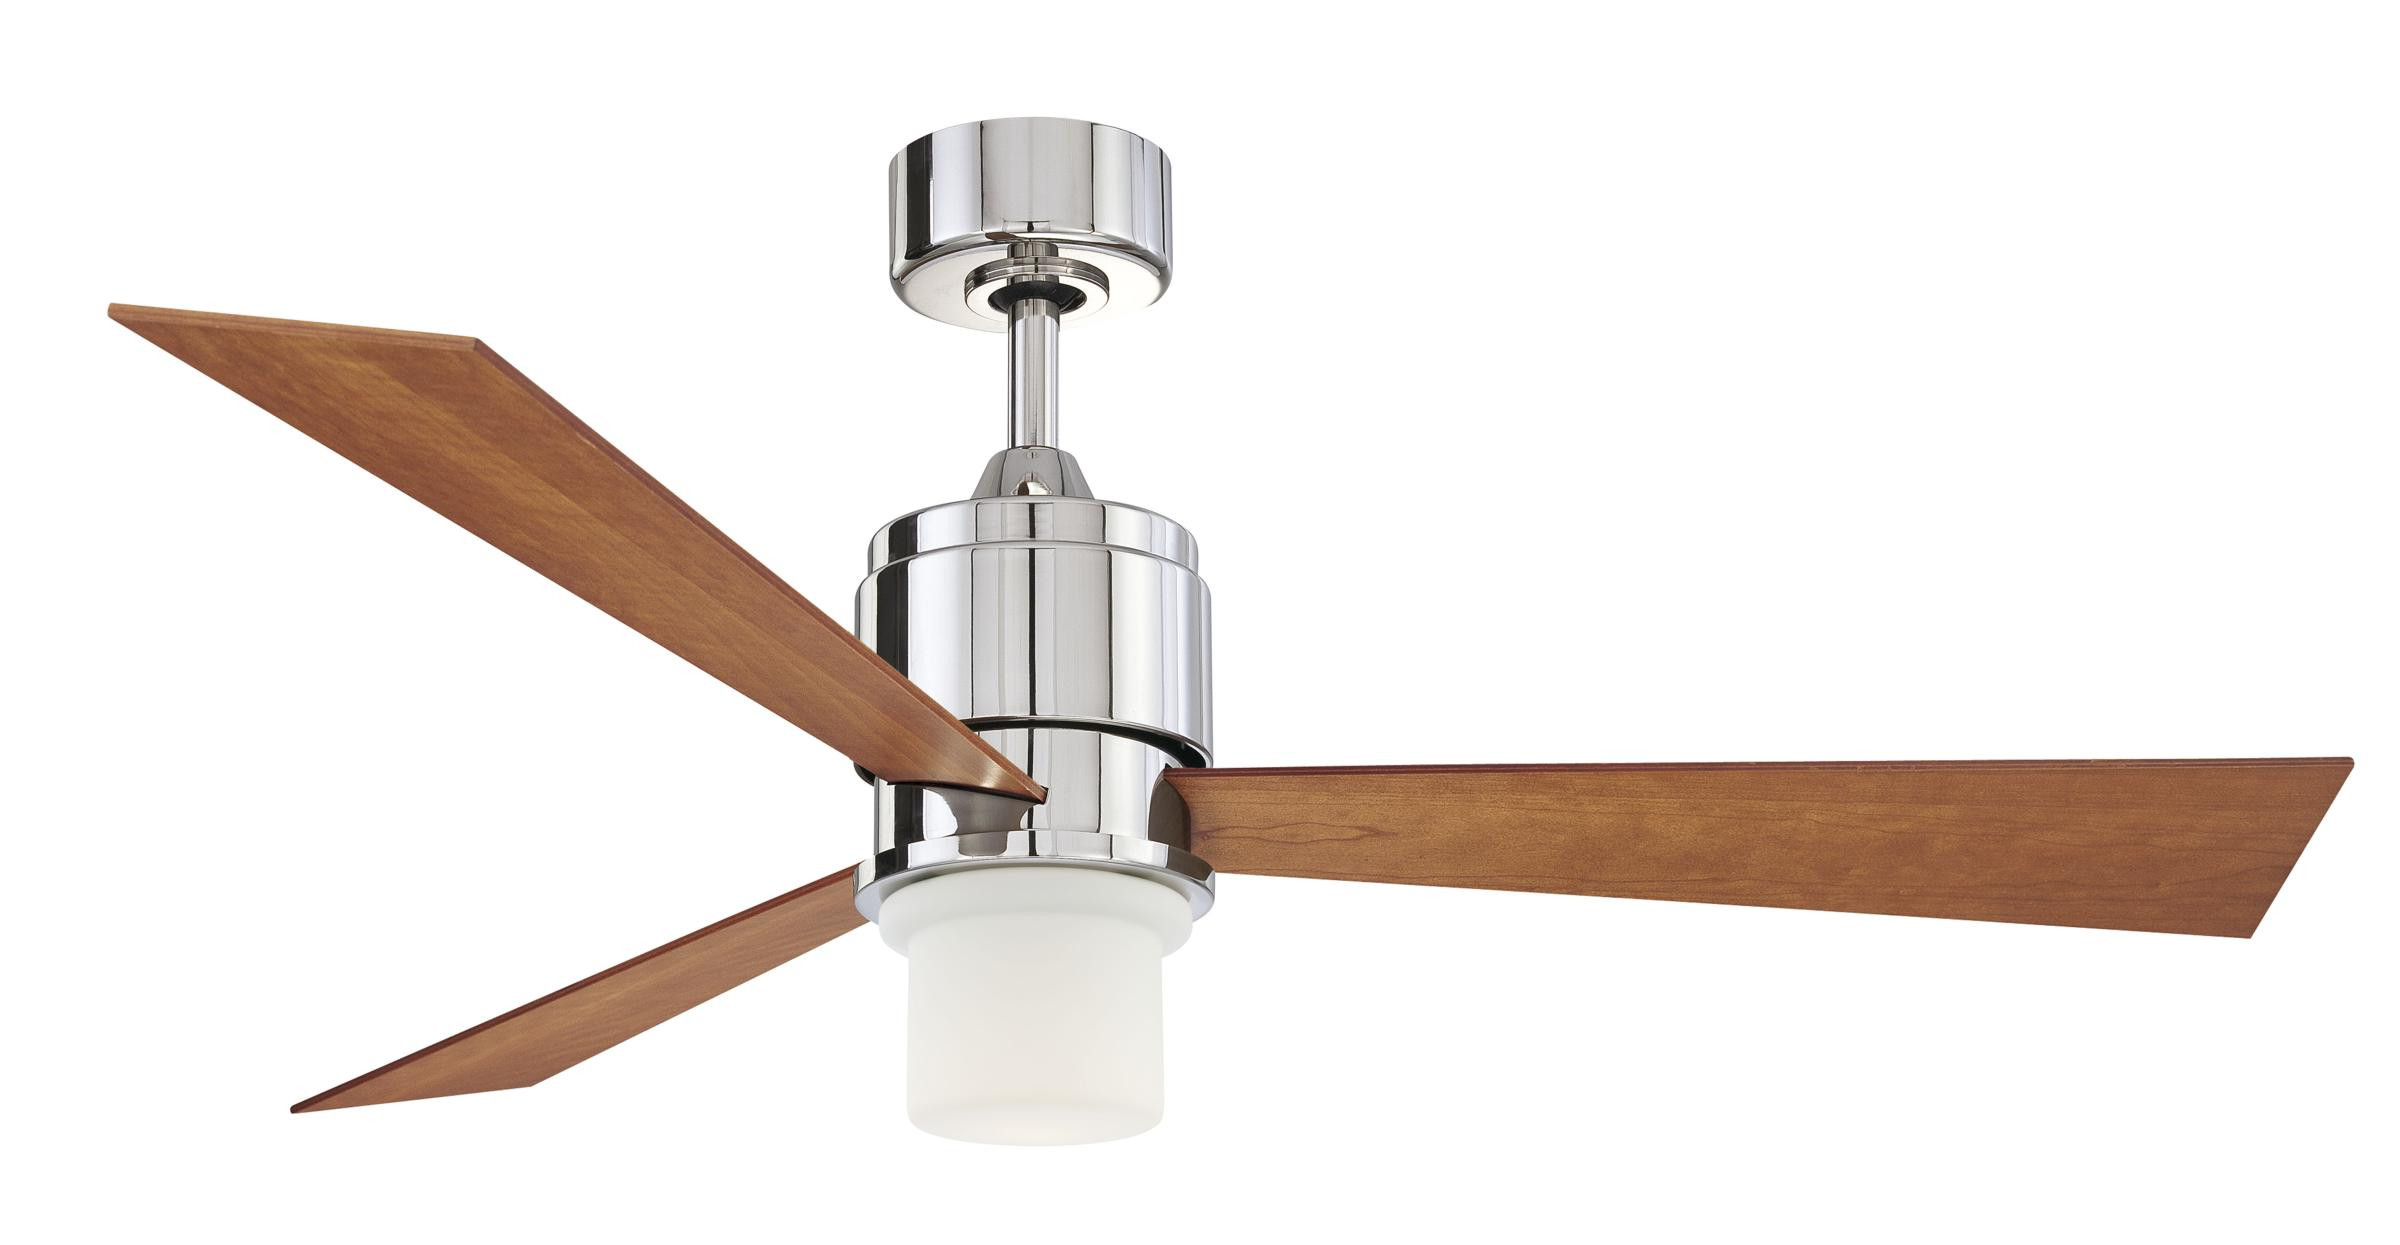 10 factors to consider when ing the Zonix ceiling fan